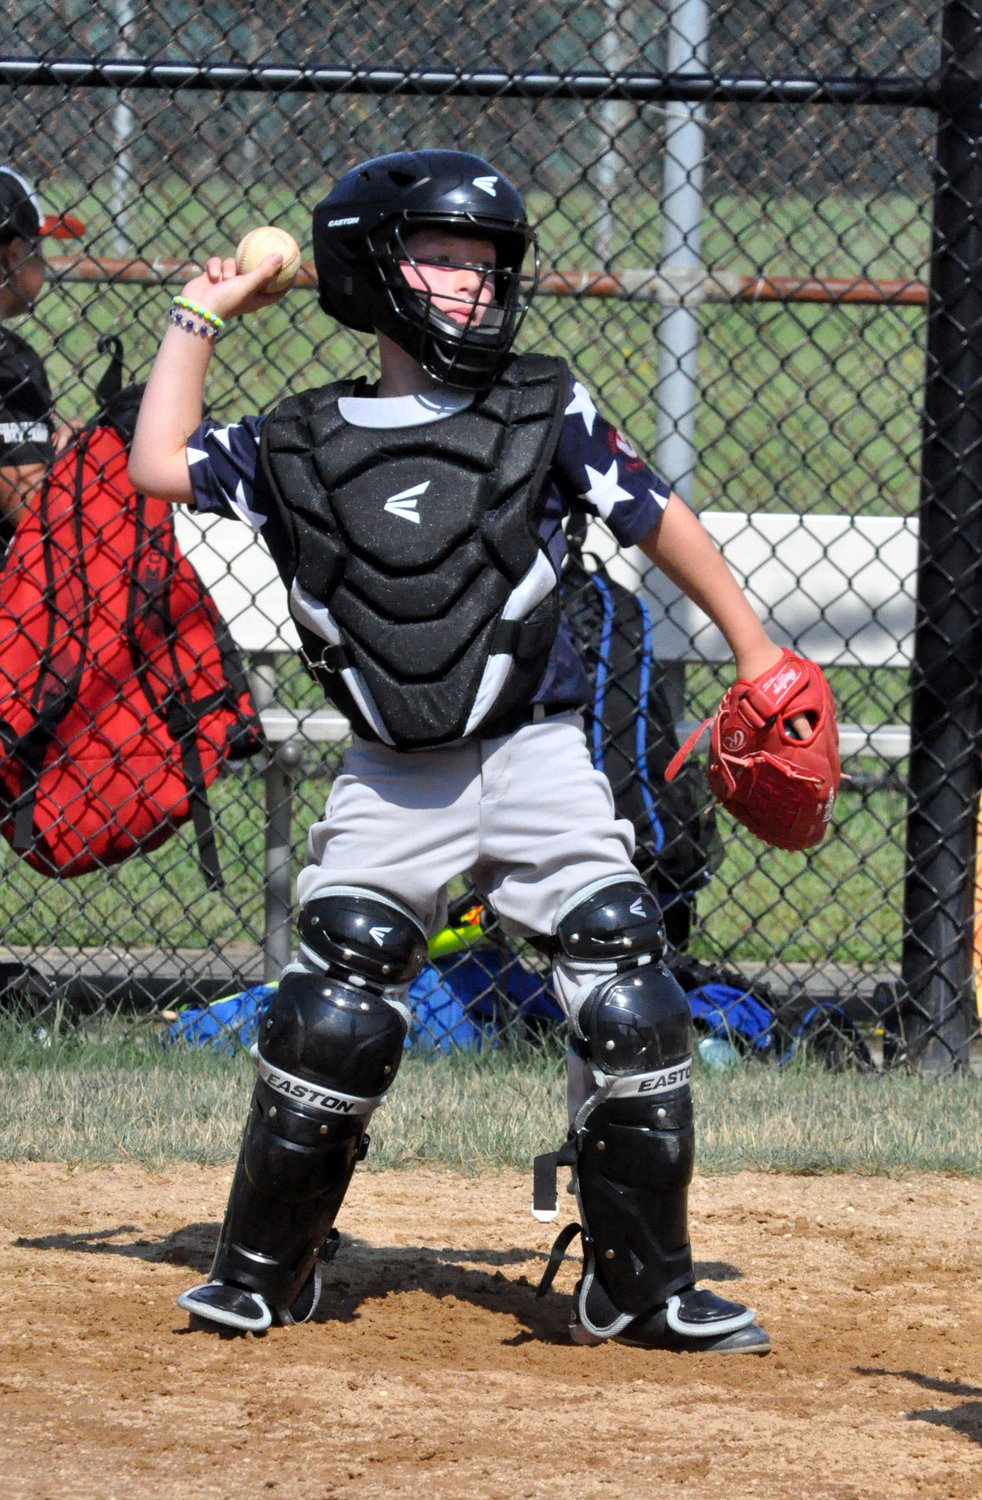 Daniel Pilott braved the heat to work some innings behind the plate.